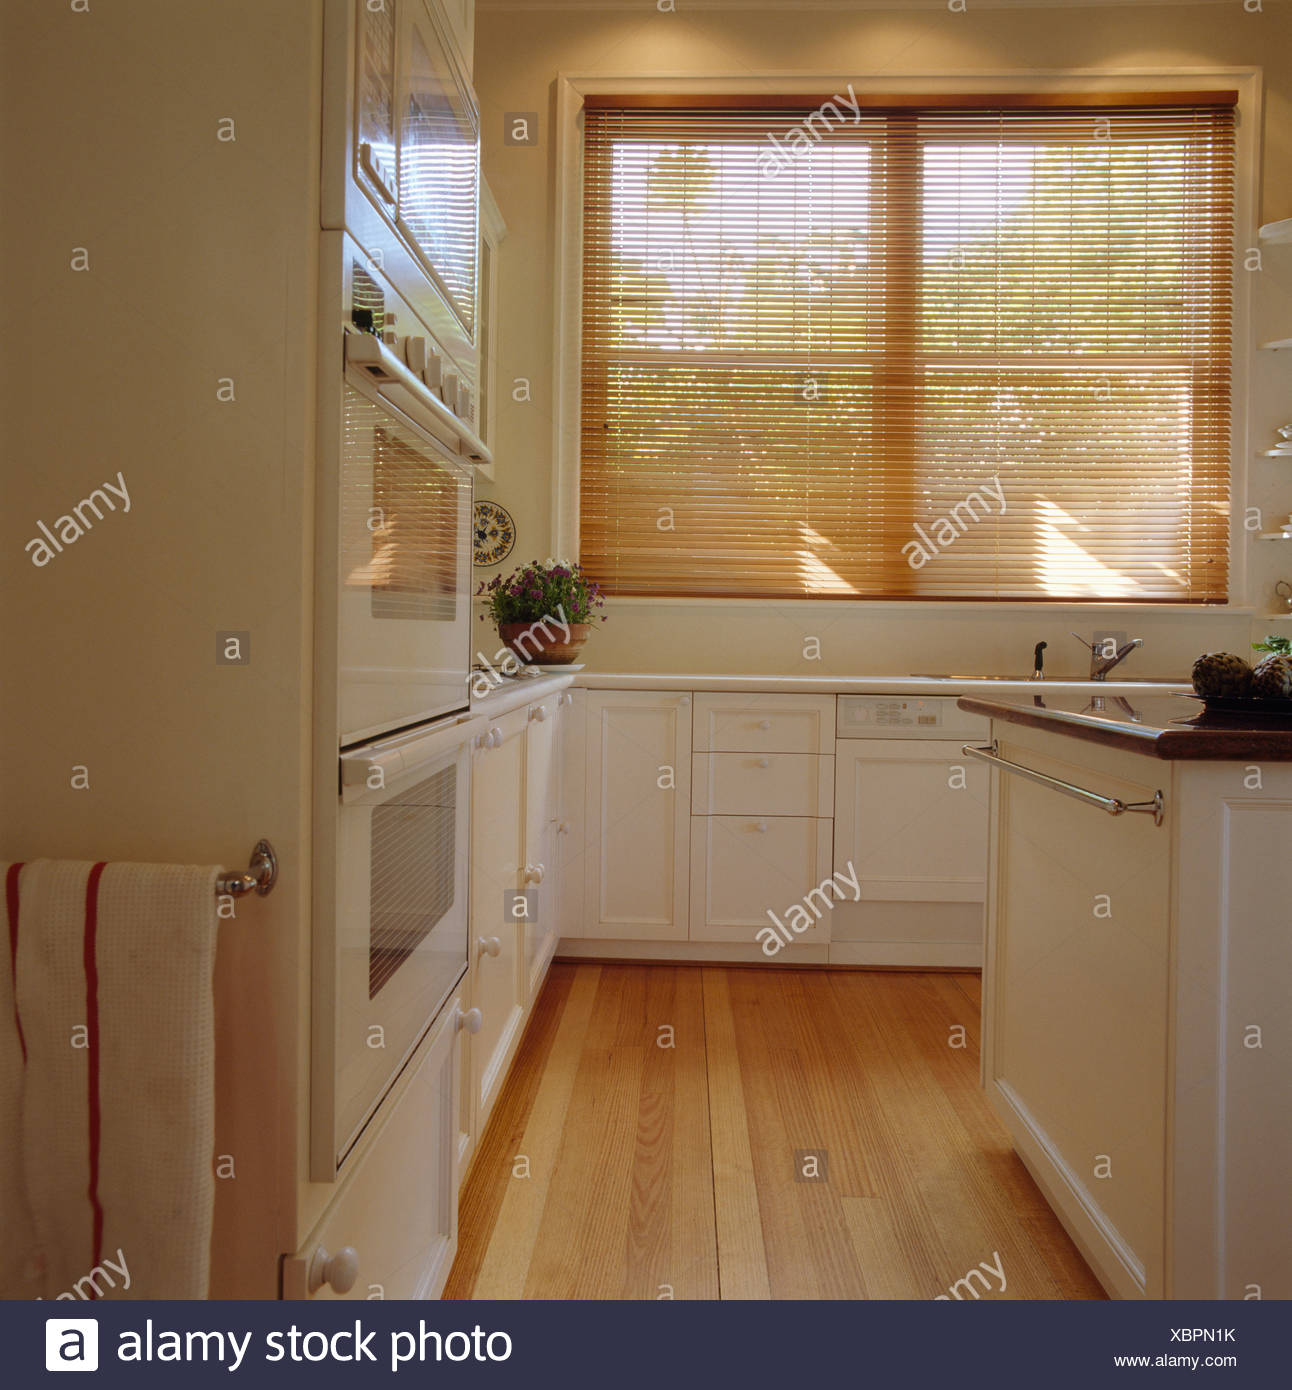 Slatted Wooden Blind And Wooden Flooring In Modern White Kitchen Stock Photo Alamy